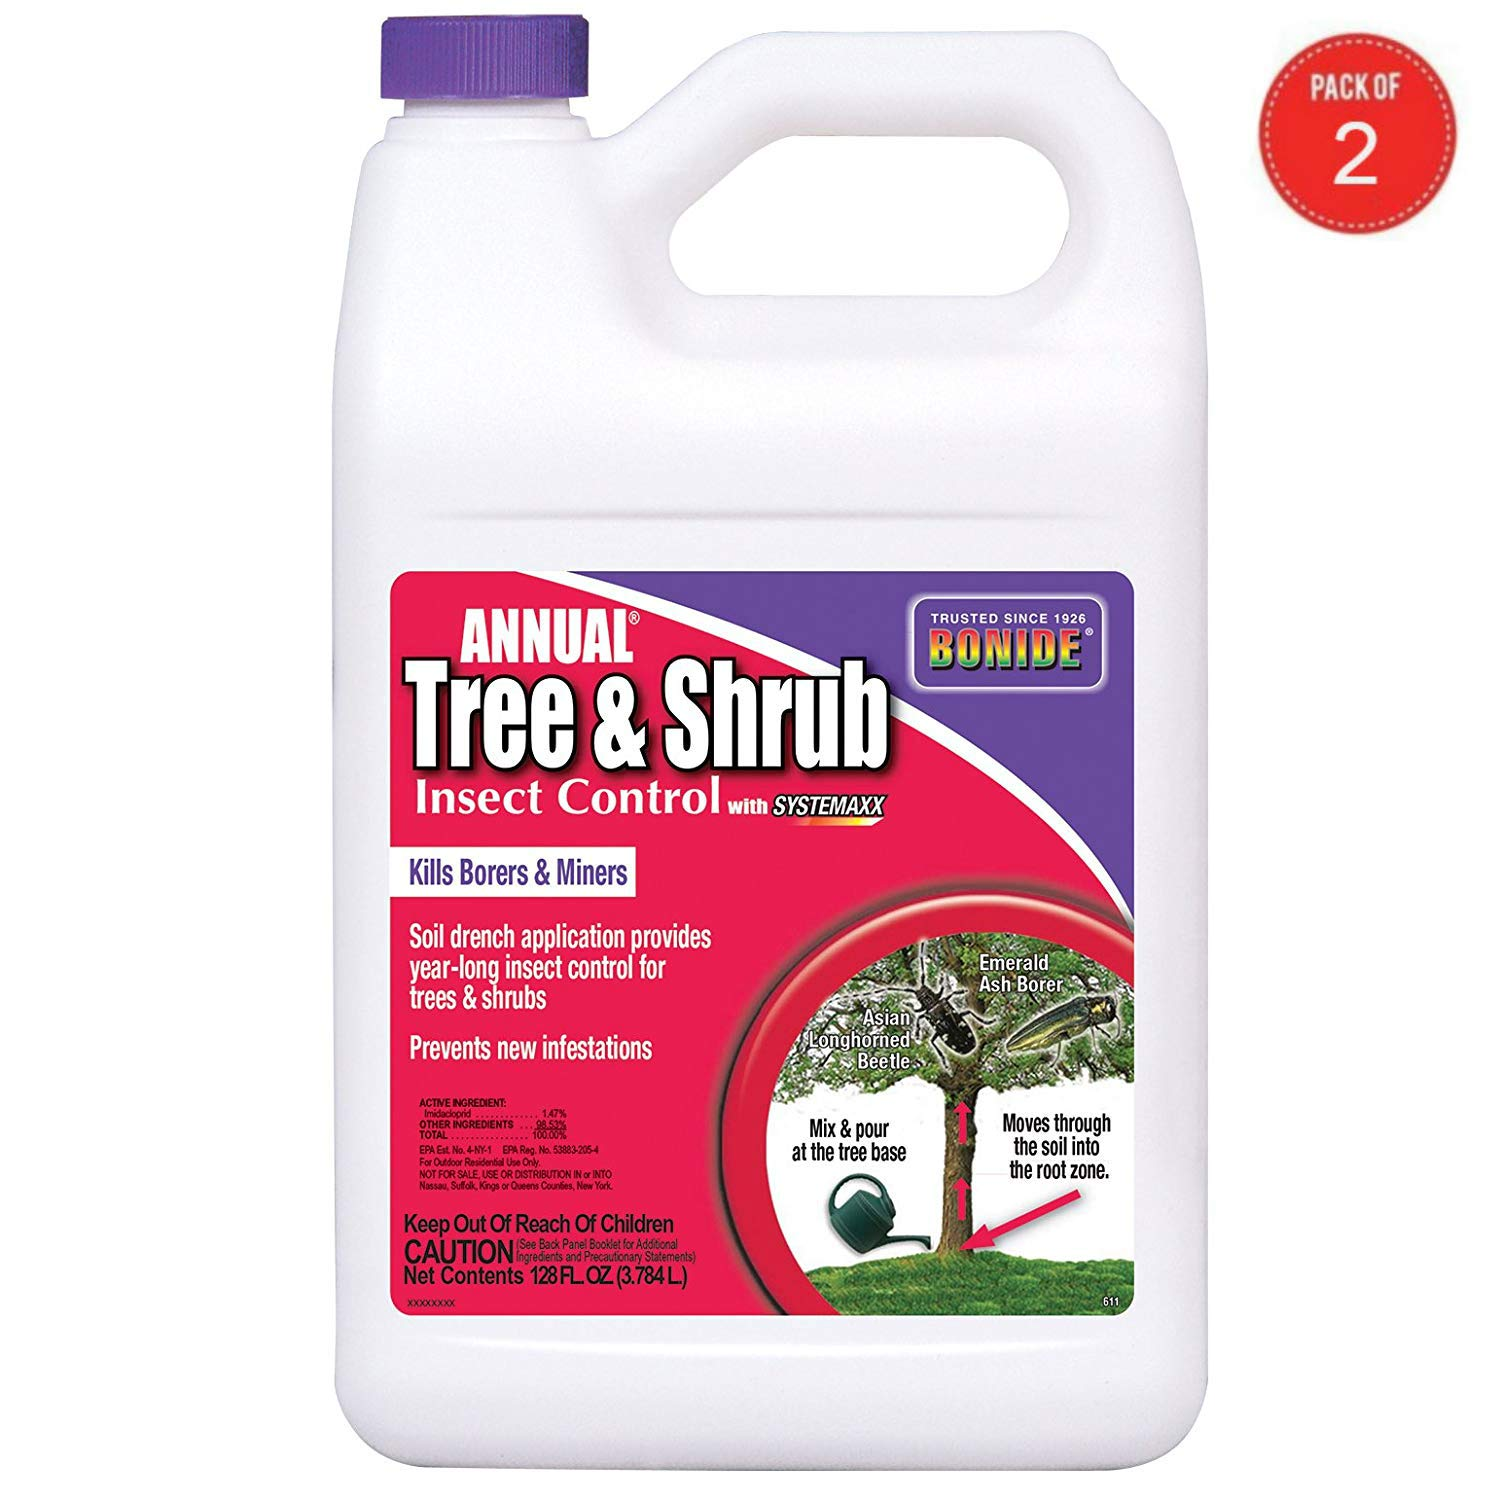 Bonide 611 Annual Tree and Shrub Insect Control, 128 Fl oz(1 Gallon) (Pack of 2) by Bonide